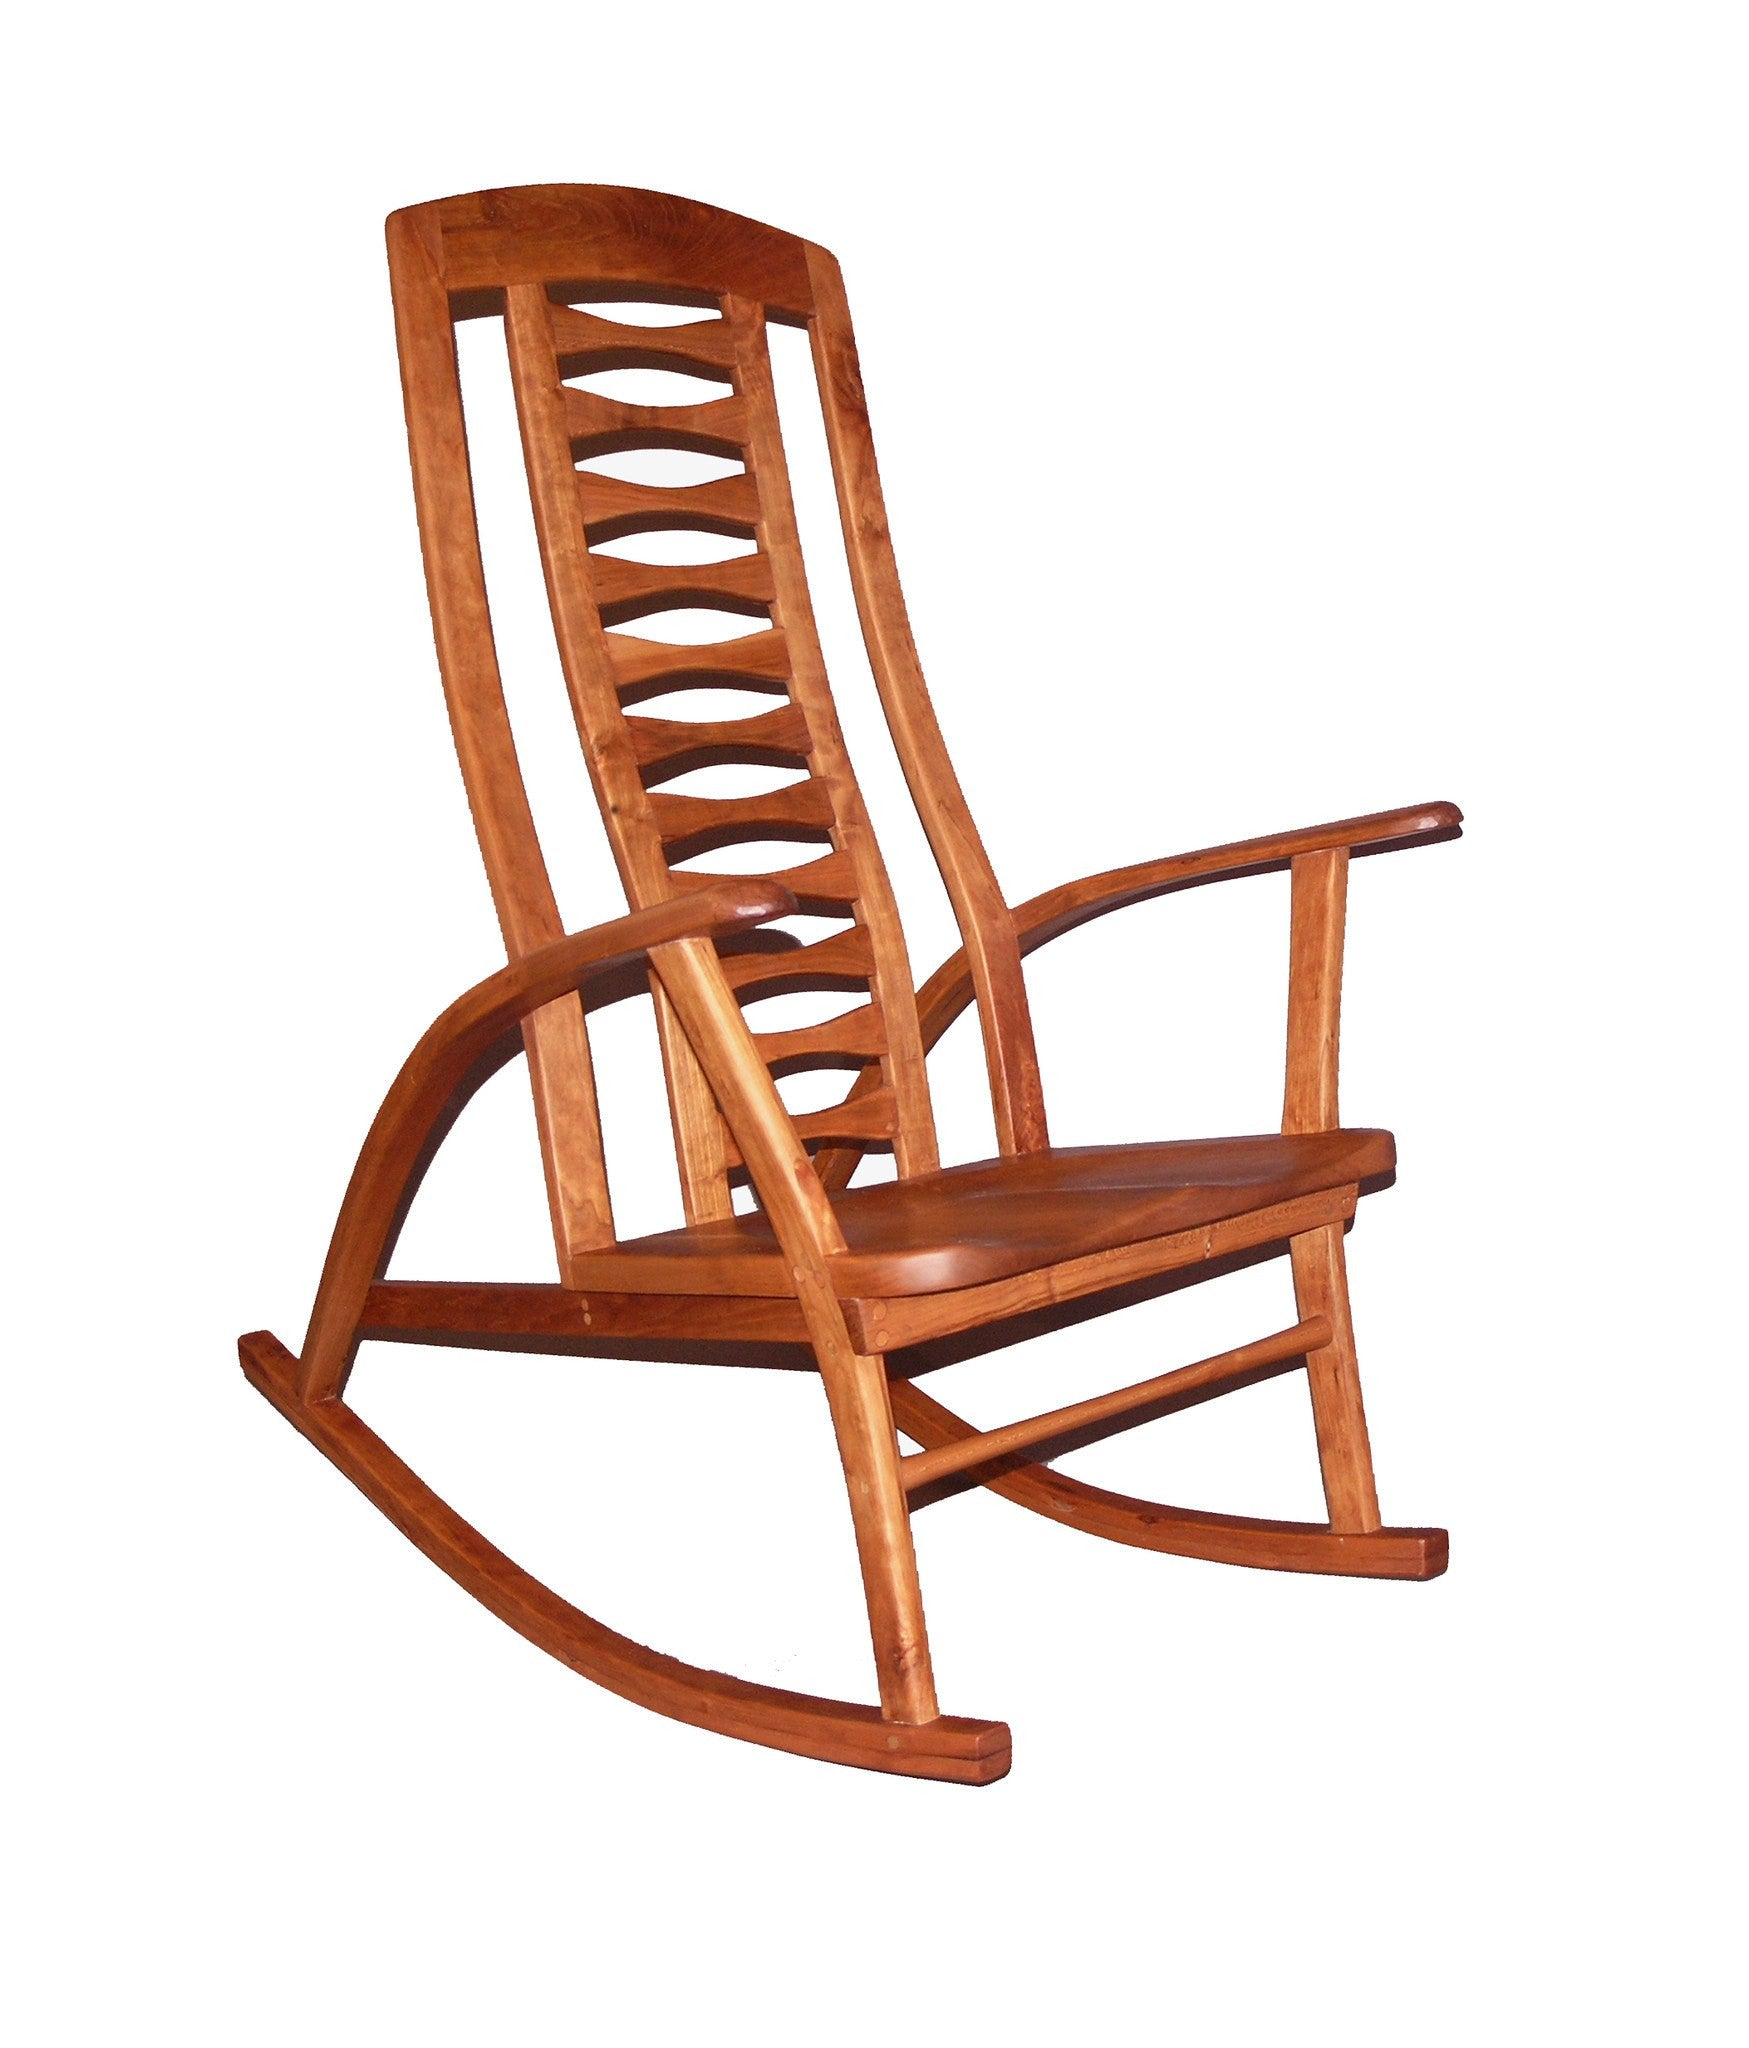 Knitting Rocking Chair